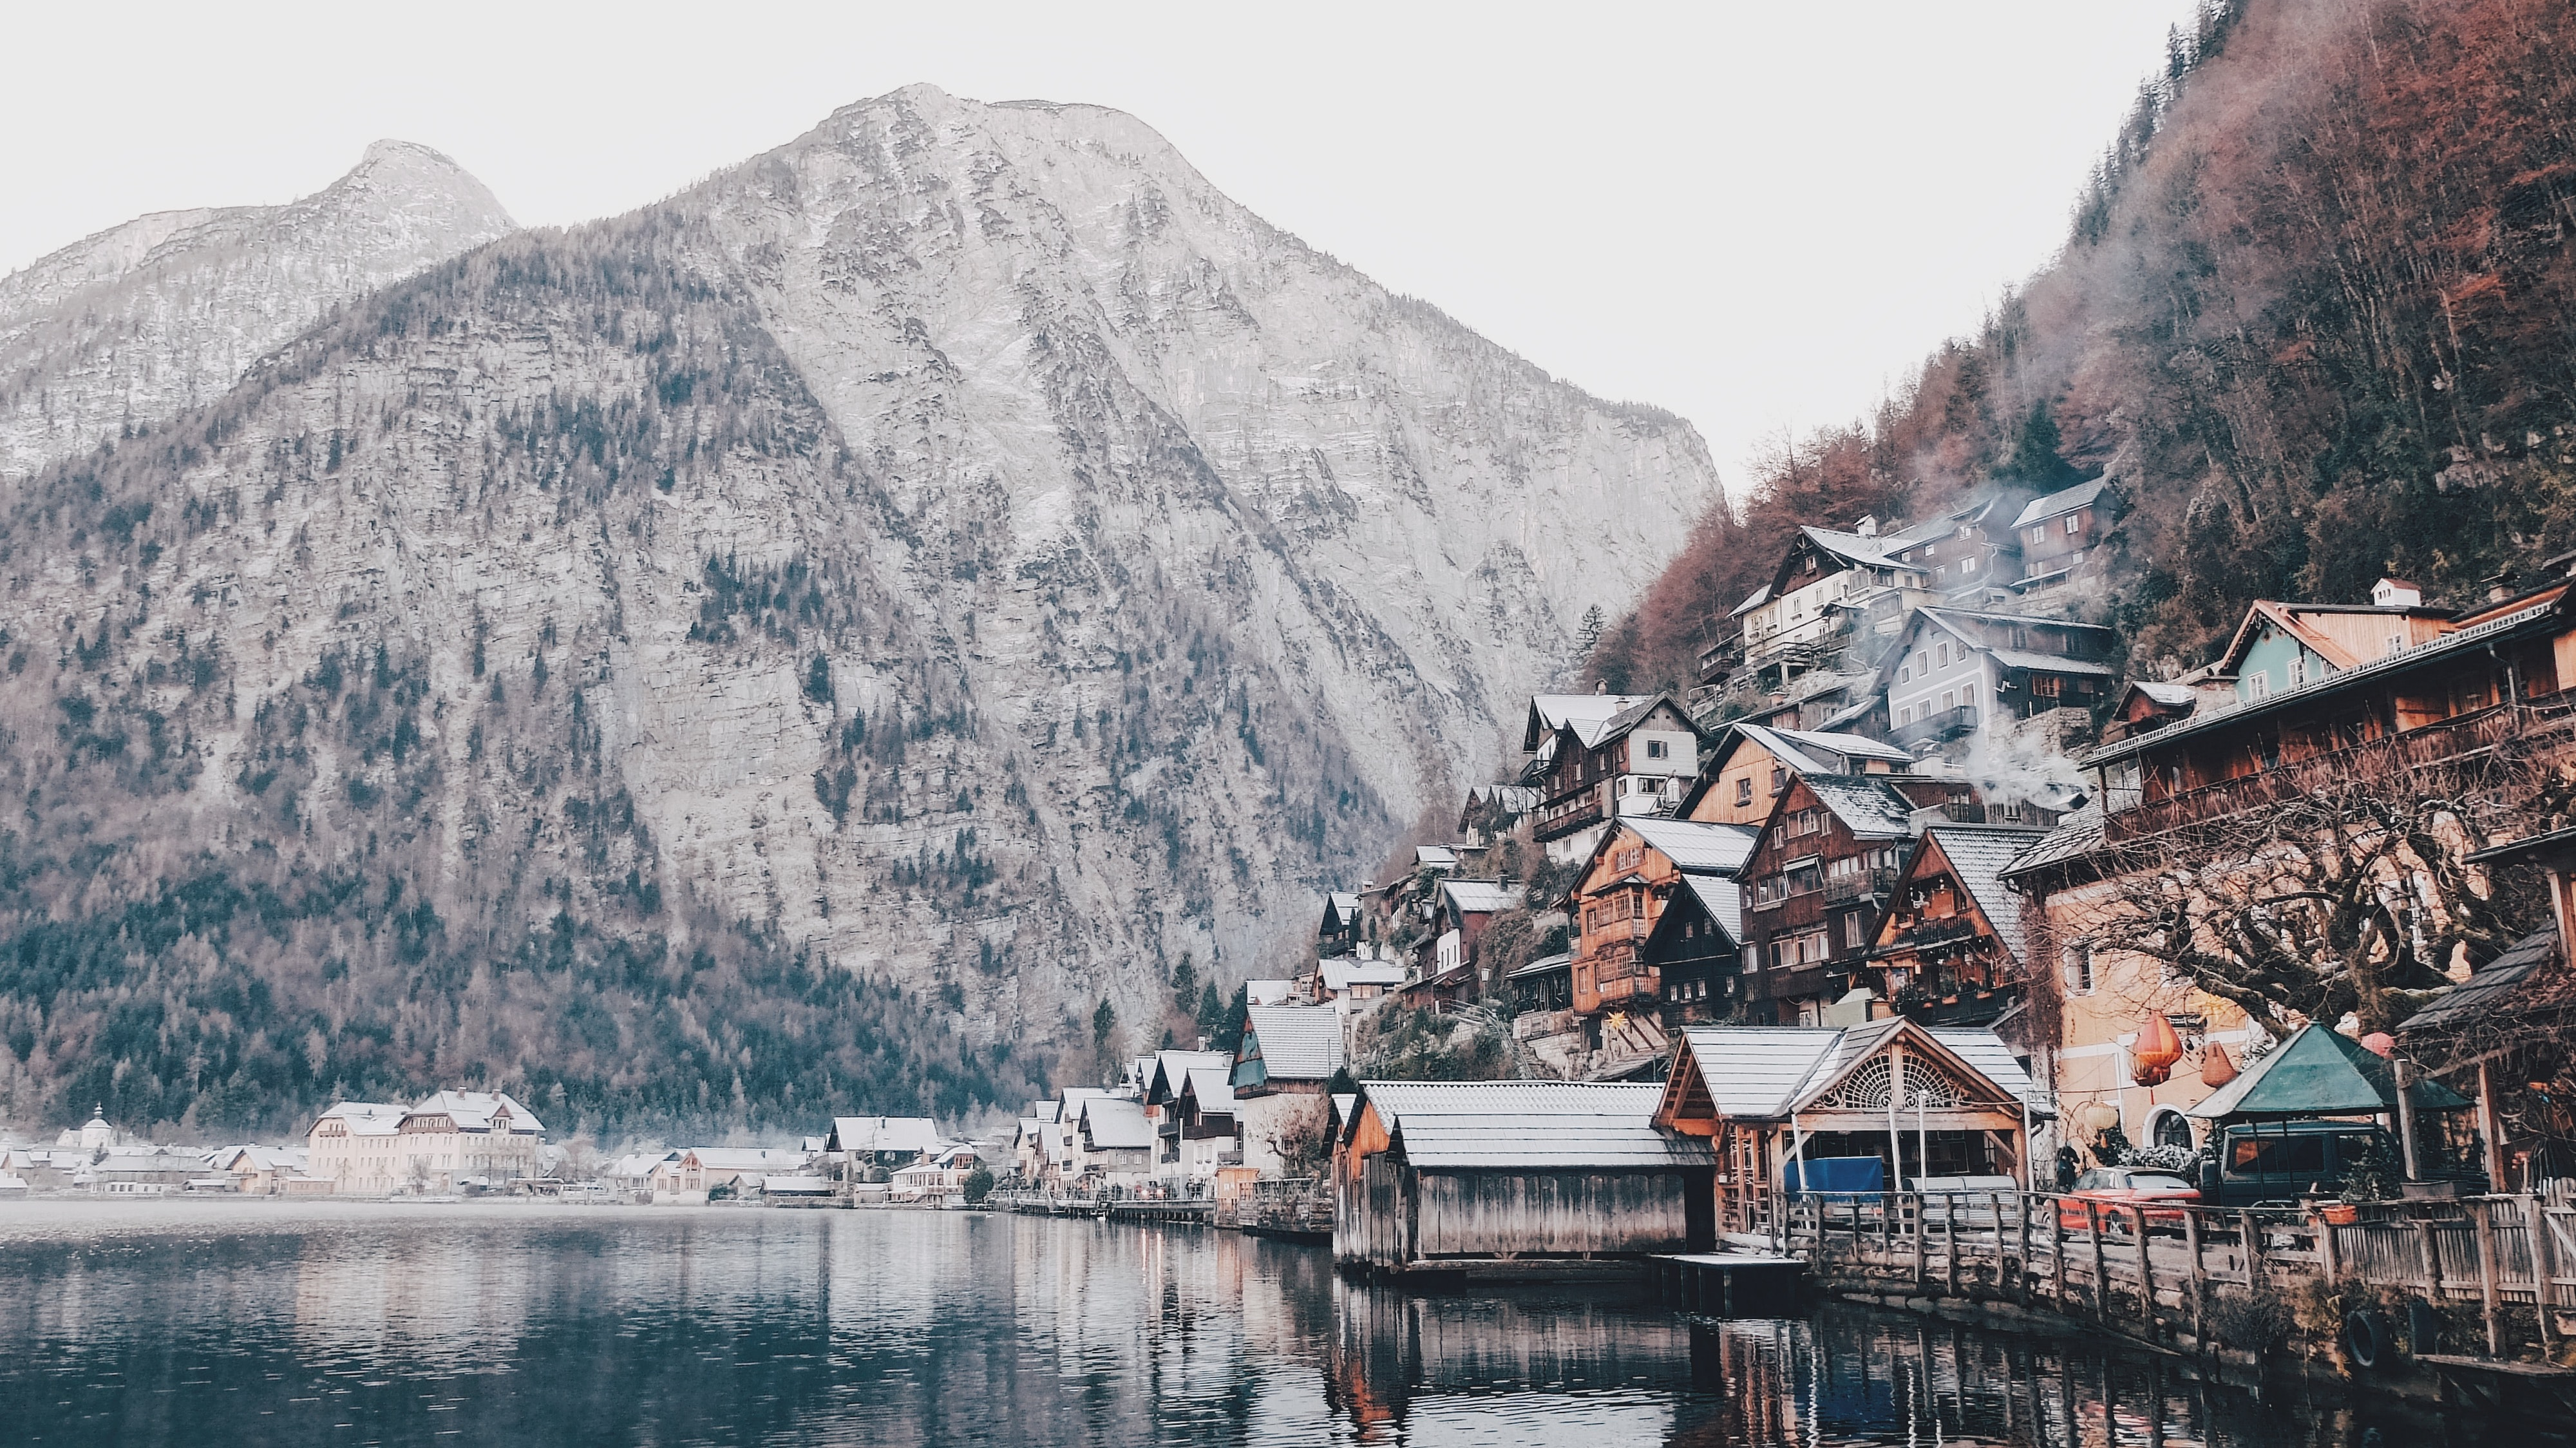 A picturesque village on the side of a wooded mountain by a lake